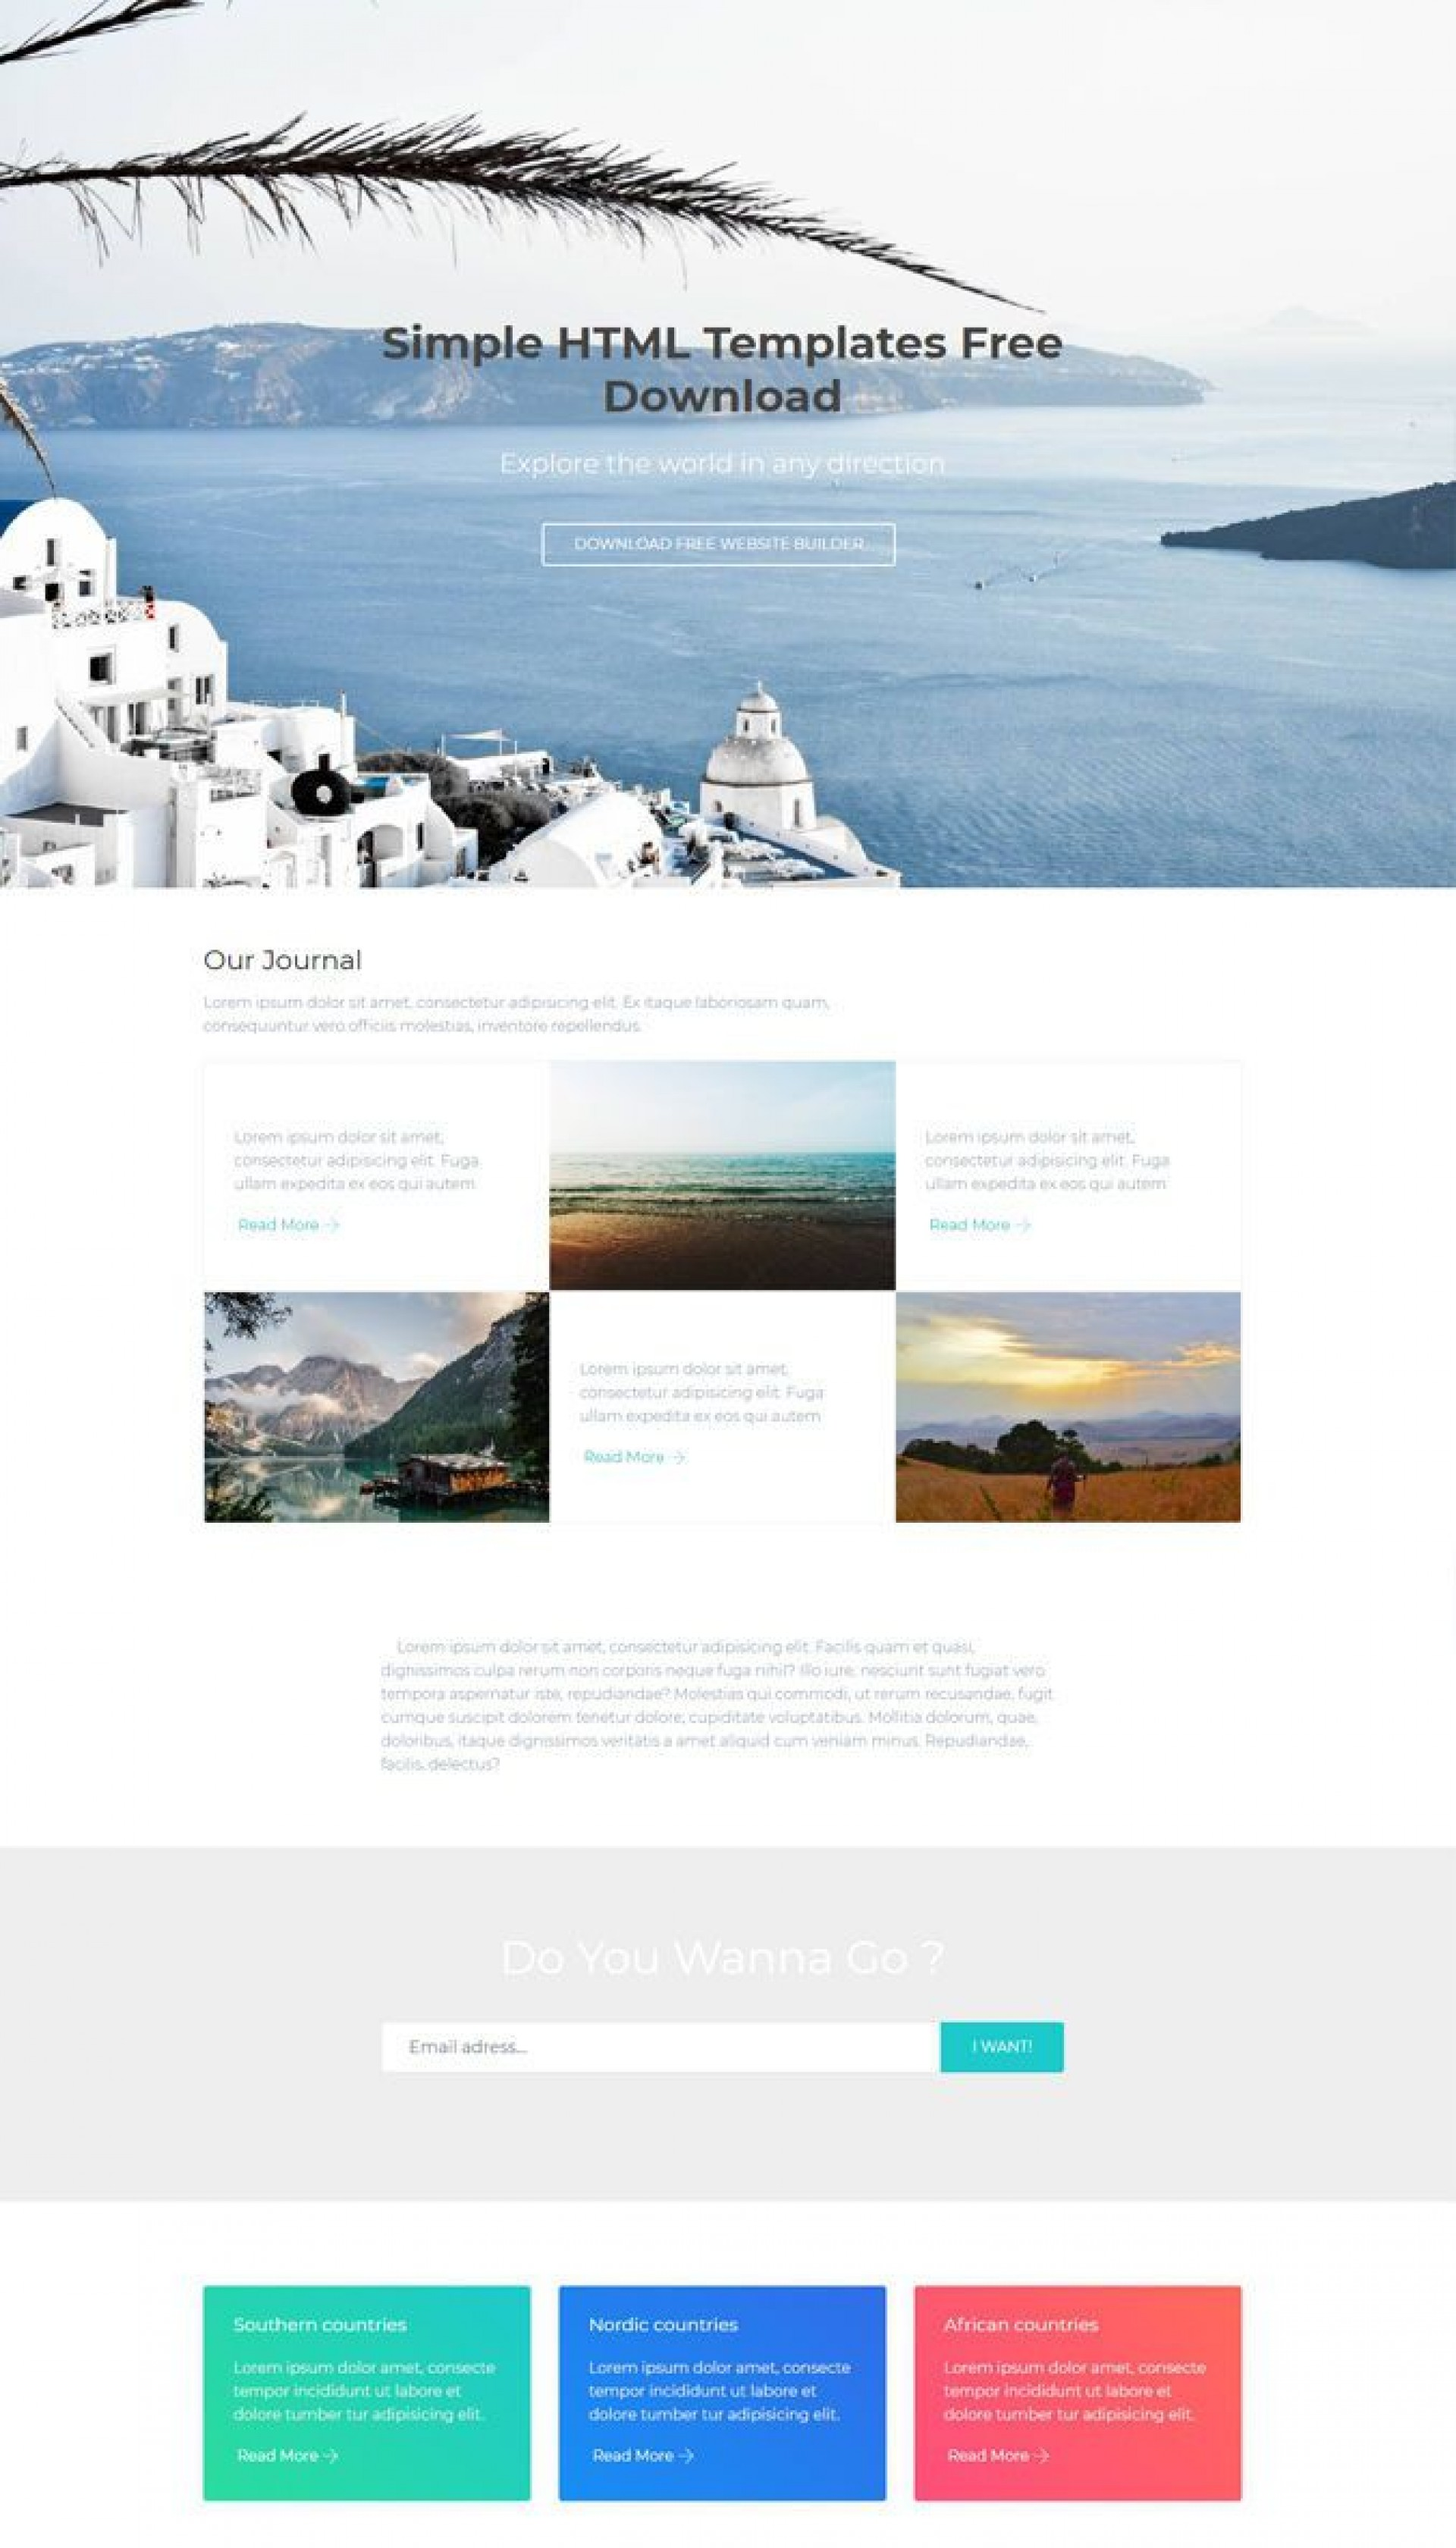 008 Surprising Simple Web Page Template Free Download Idea  One Website Html With Cs1920